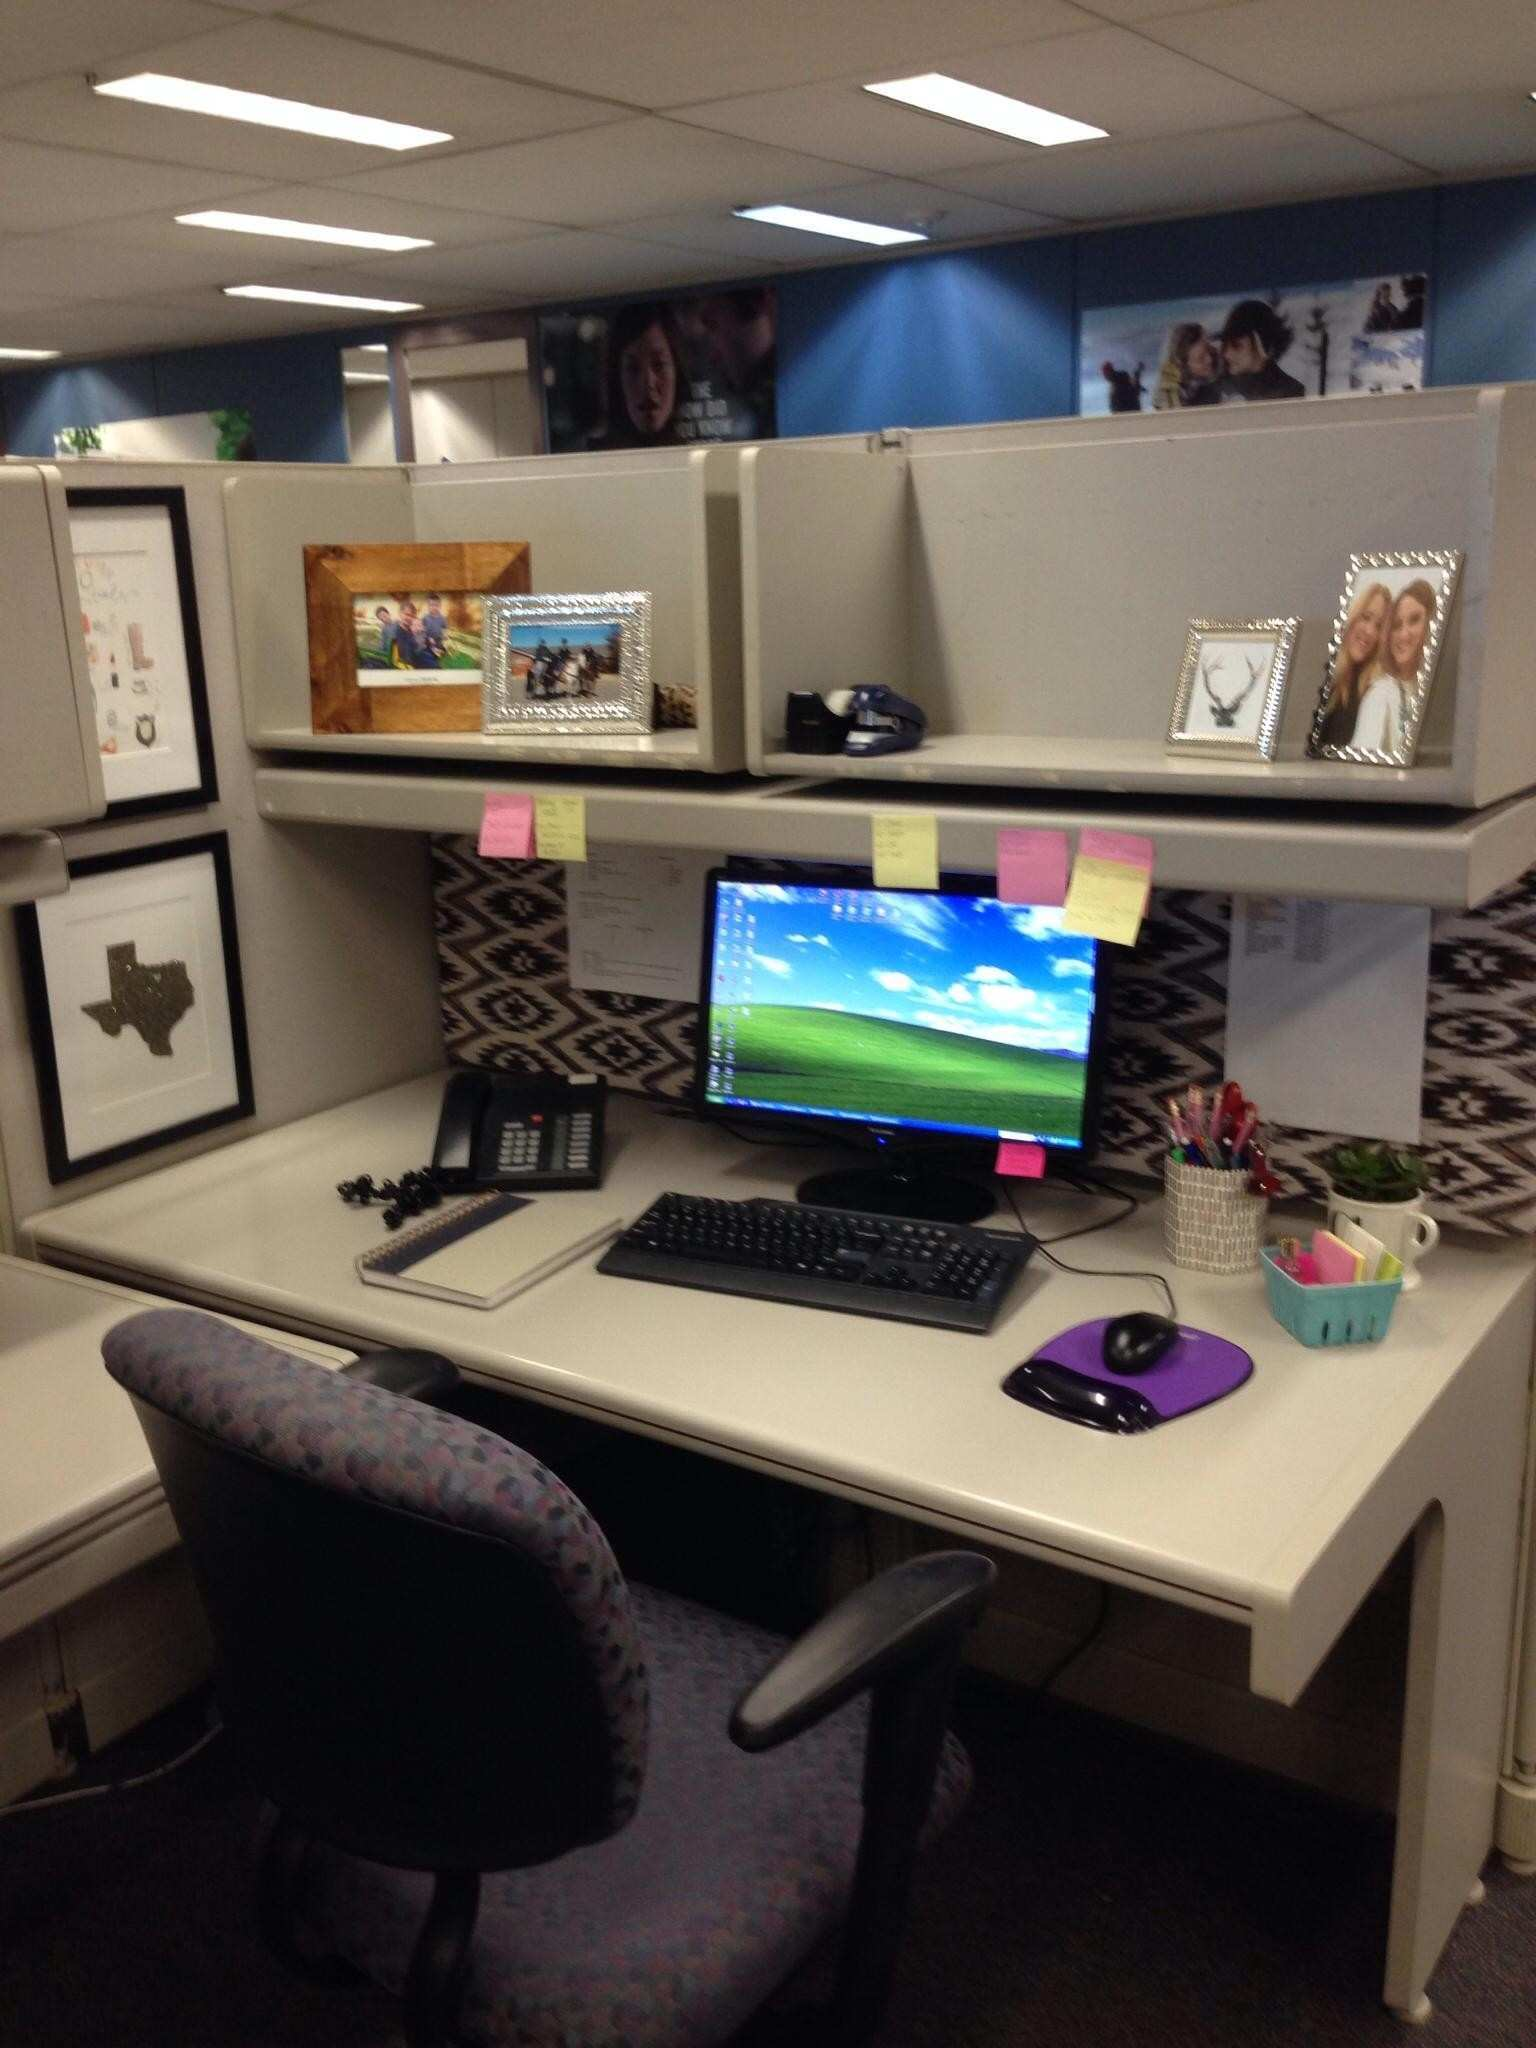 20 Choices of Cubicle Wall Art